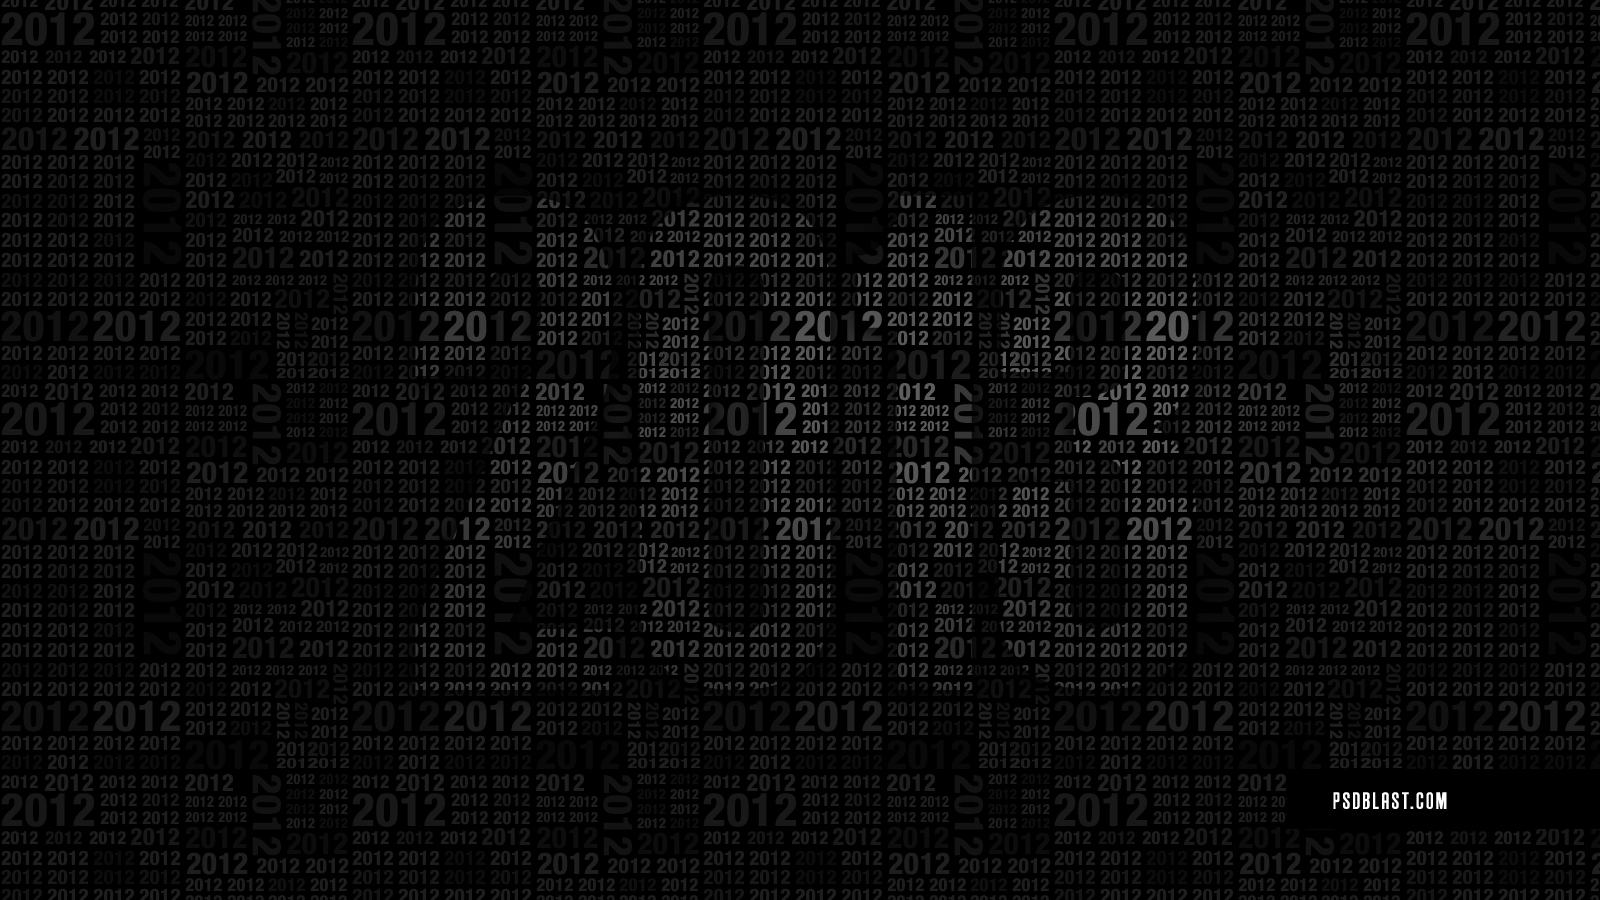 new year wallpaper 2013 psdblast